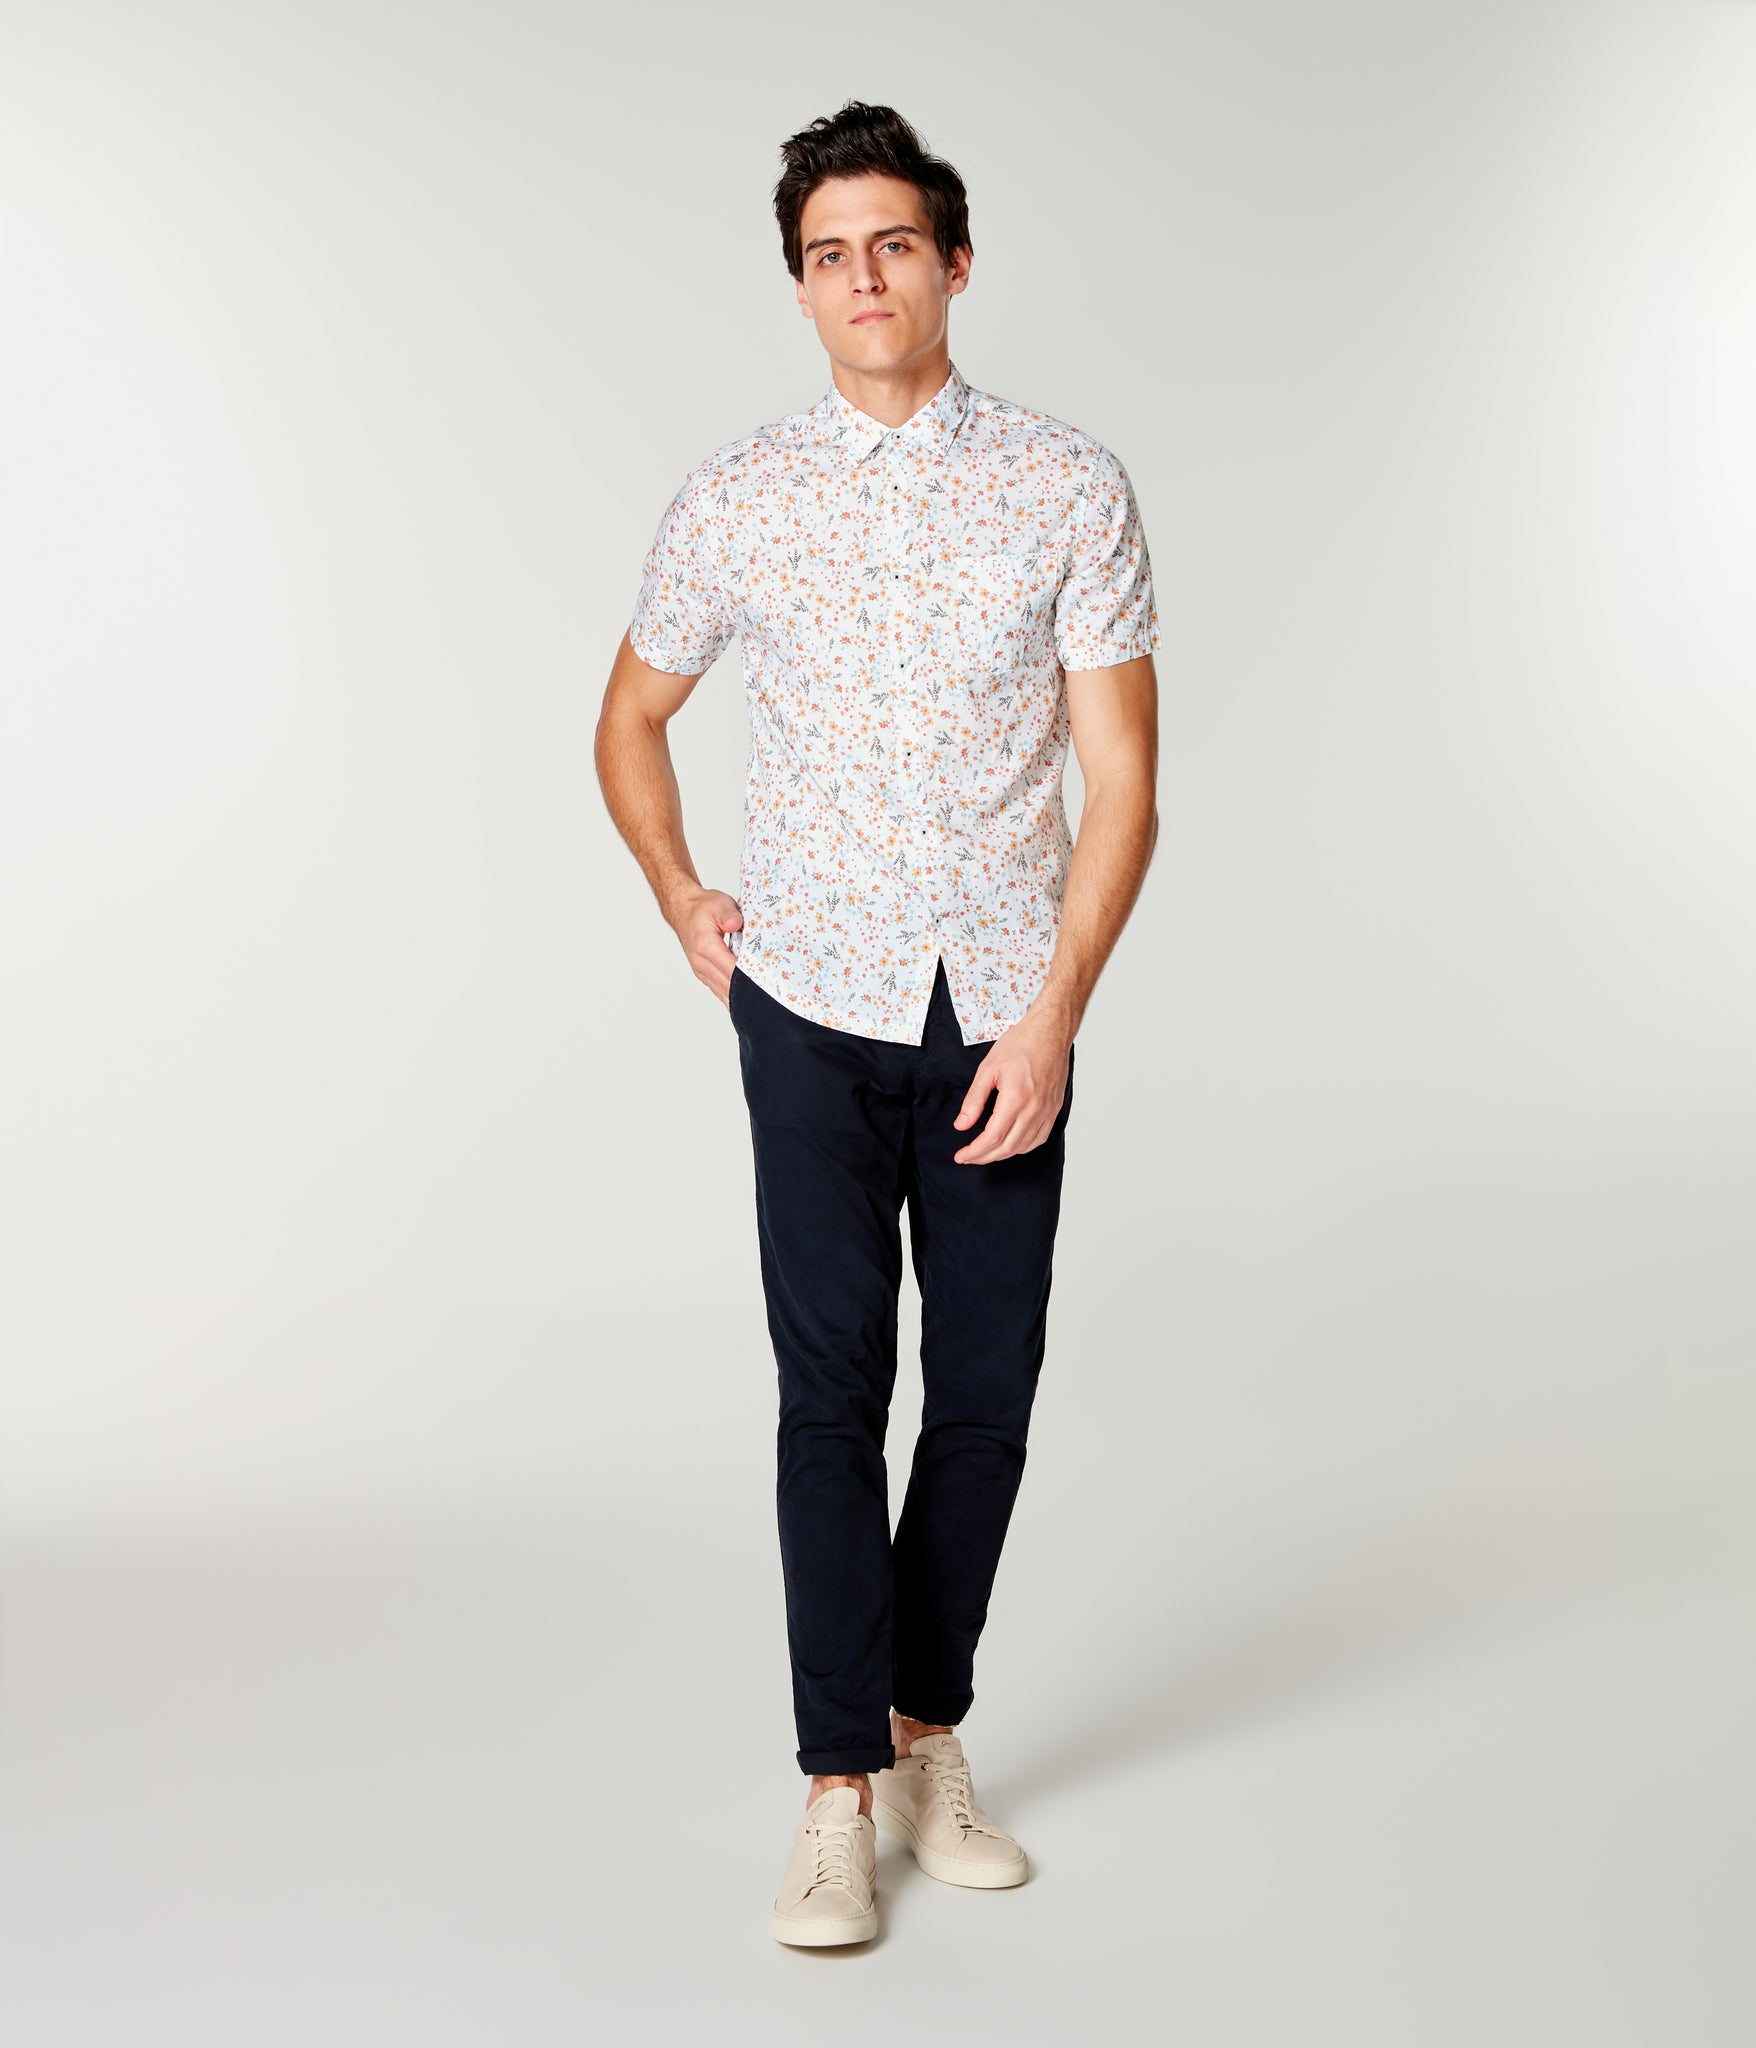 On-Point Print Shirt Short Sleeve - White Hanabira Blooms